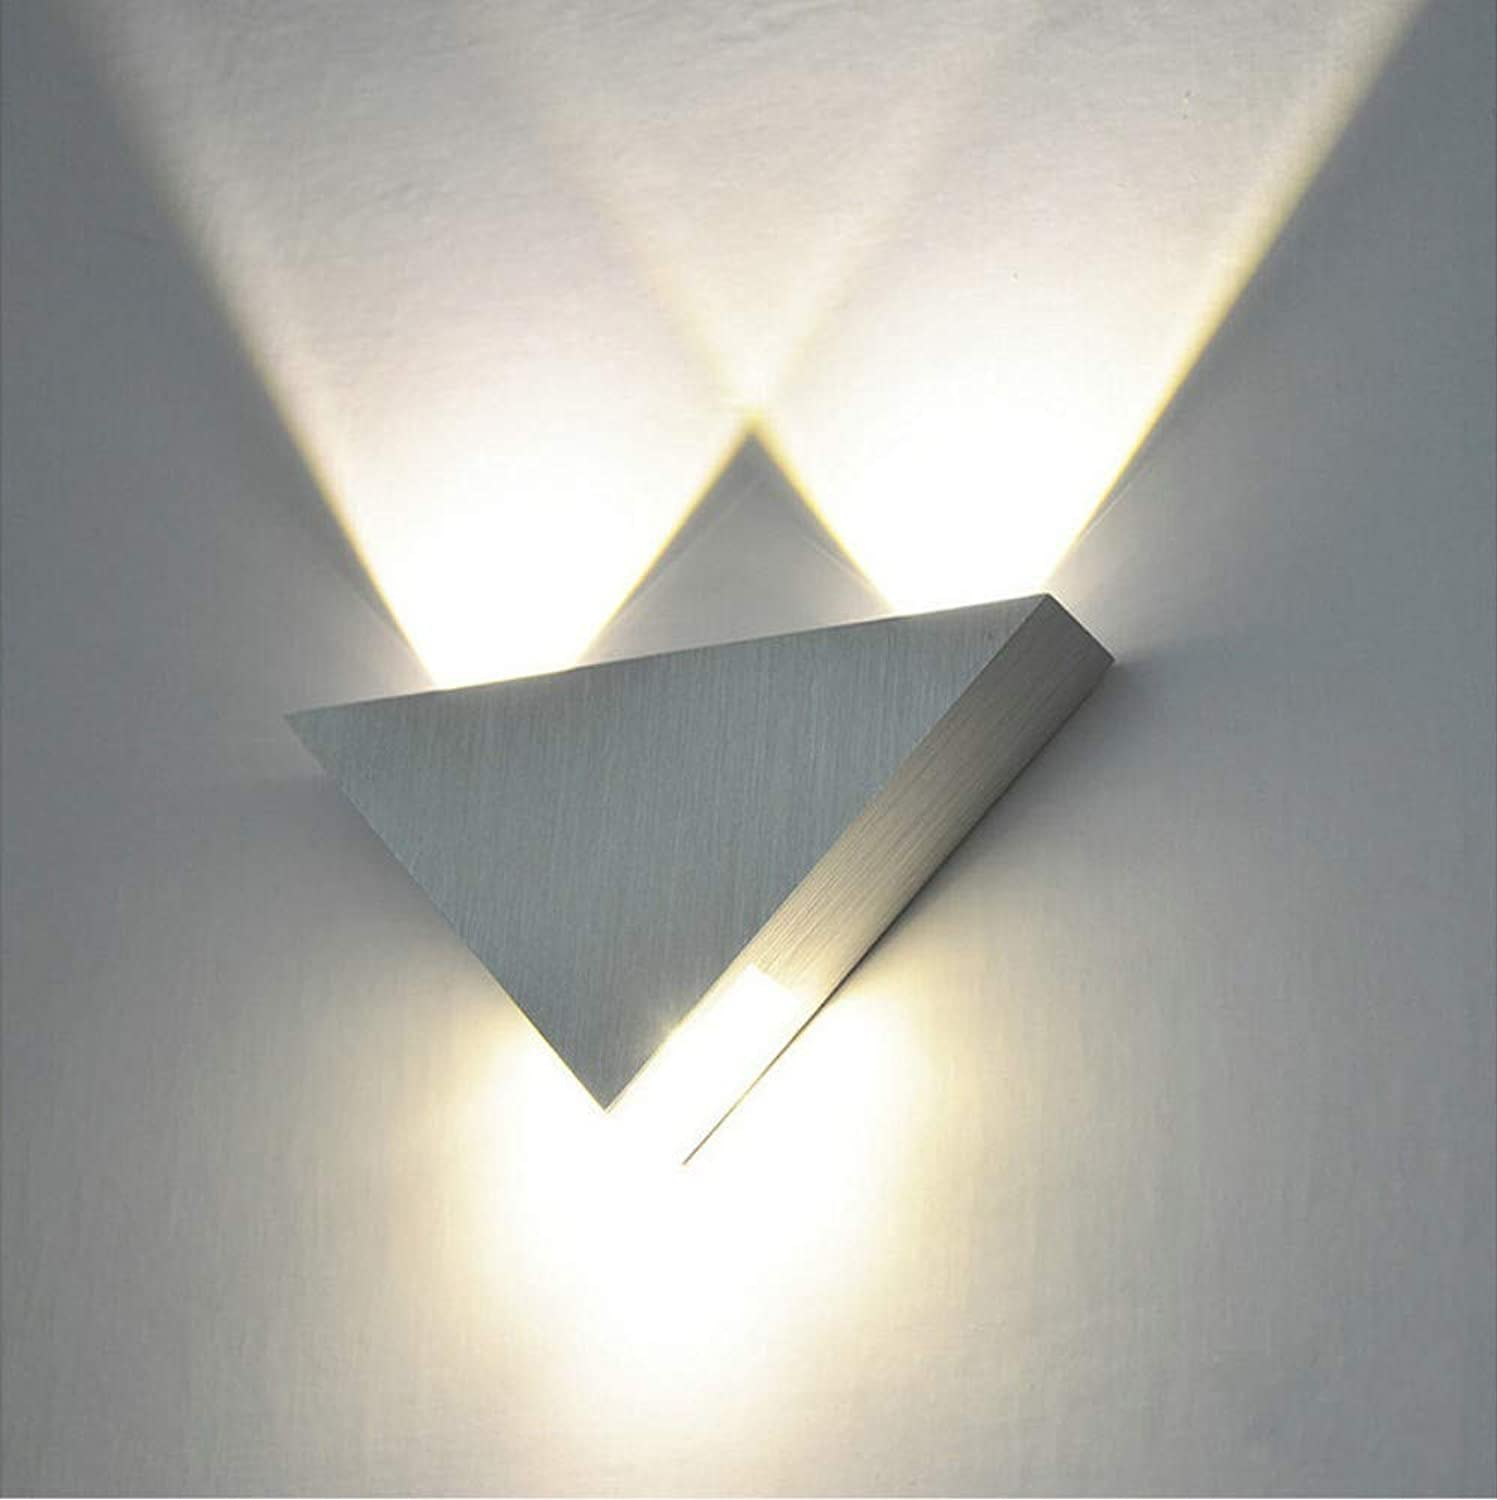 Modern 3W Triangle LED Wall Sconce Light Fixture Indoor Hallway Up Down Wall Lamp Spot Light Aluminum Decorative Lighting,Silber,3W,warm Weiß